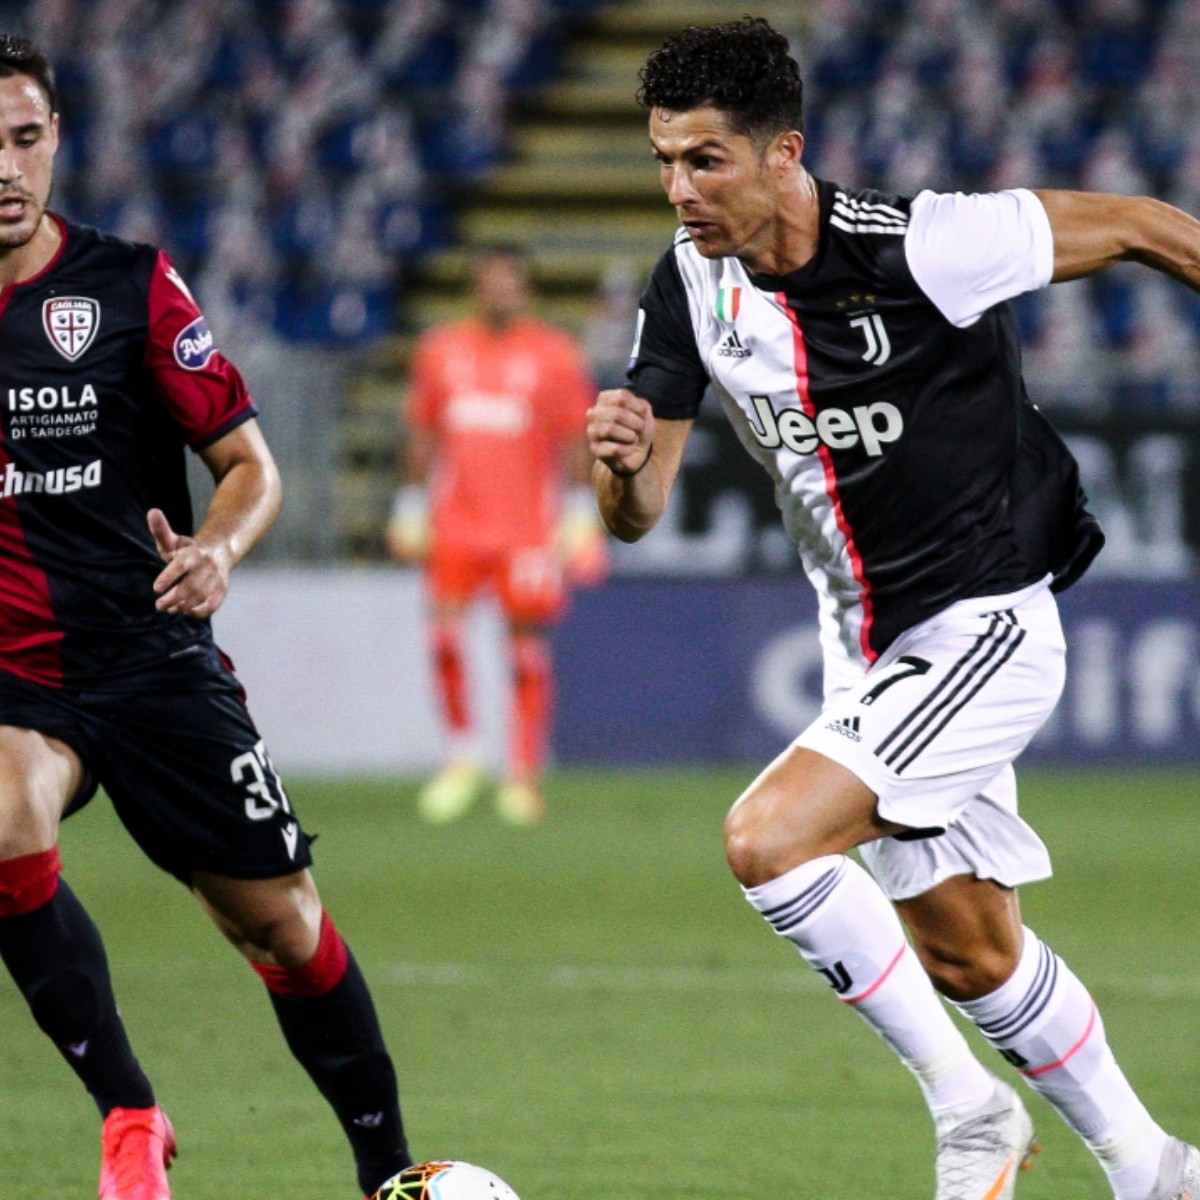 Serie A 2020 21 Juventus Vs Cagliari How To Watch Or Live Stream Online Today In The Us Predictions And Odds Watch Here Bolavip Us